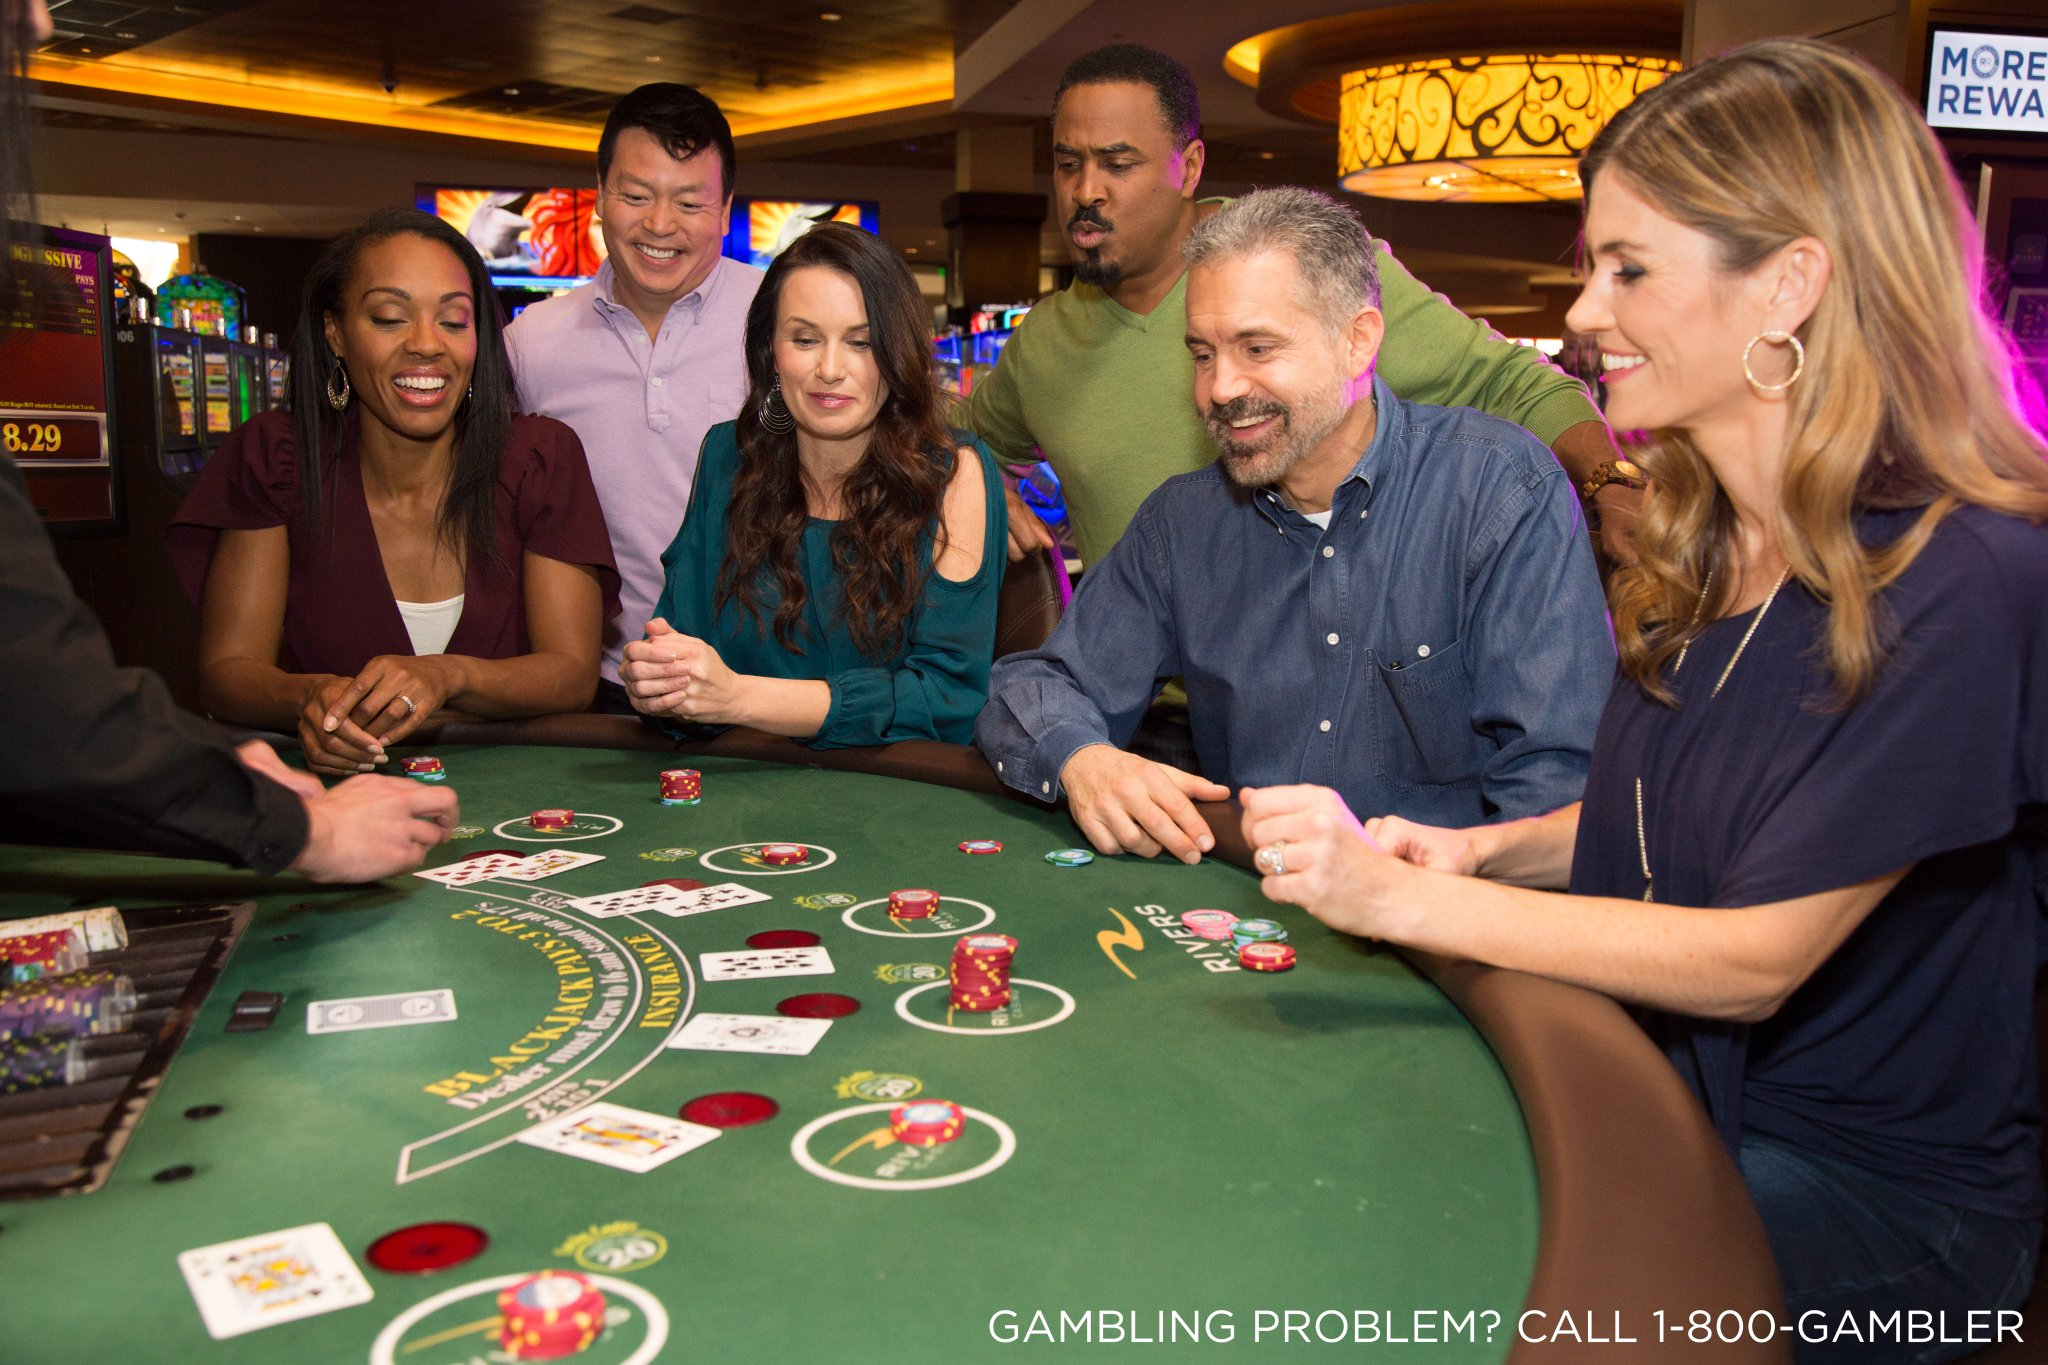 Rivers Casino Pittsburgh On Twitter Happy National Playingcardday Celebrate With 5 Blackjack Craps And Roulette In Our Pittsburgh Table Games Party Pit Visit Https T Co Mmniwfo58m For Details Gambling Problem Call 1800gambler Https T Co